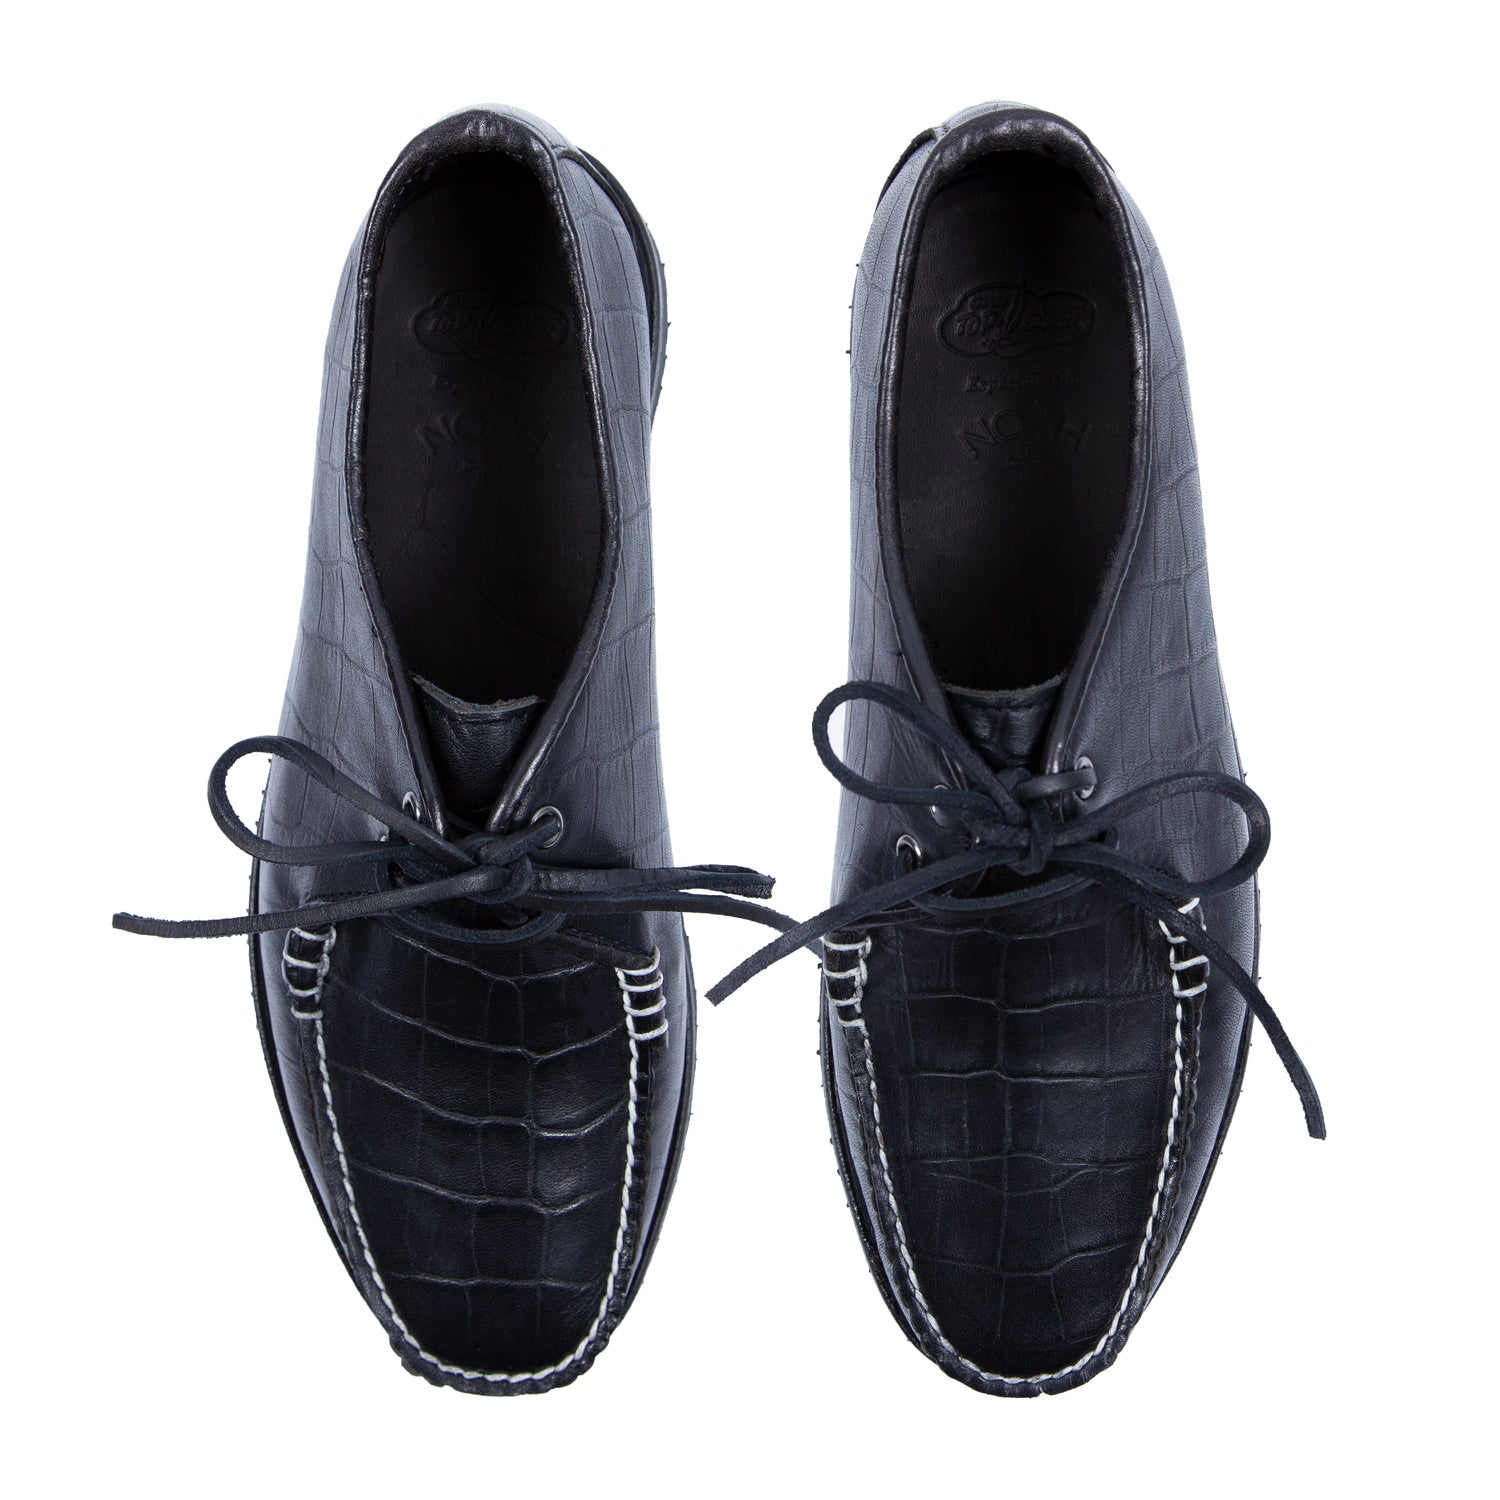 Noah x Sperry Faux-Croc Embossed Captain's Oxford